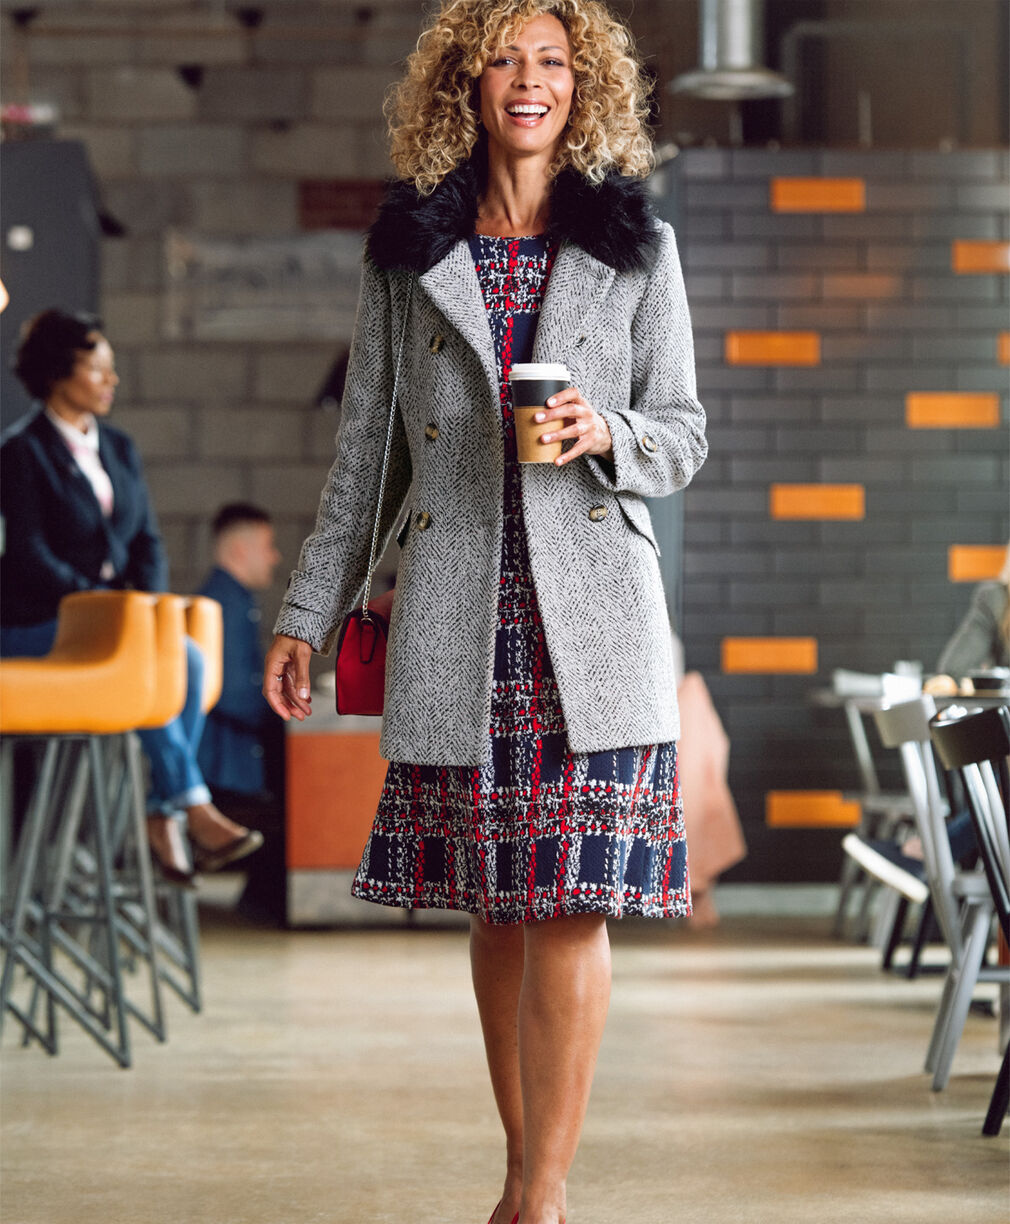 The Feelgood Coat   Double Breasted Feelgood Coat   Textured Check Dress   By Cotton Traders